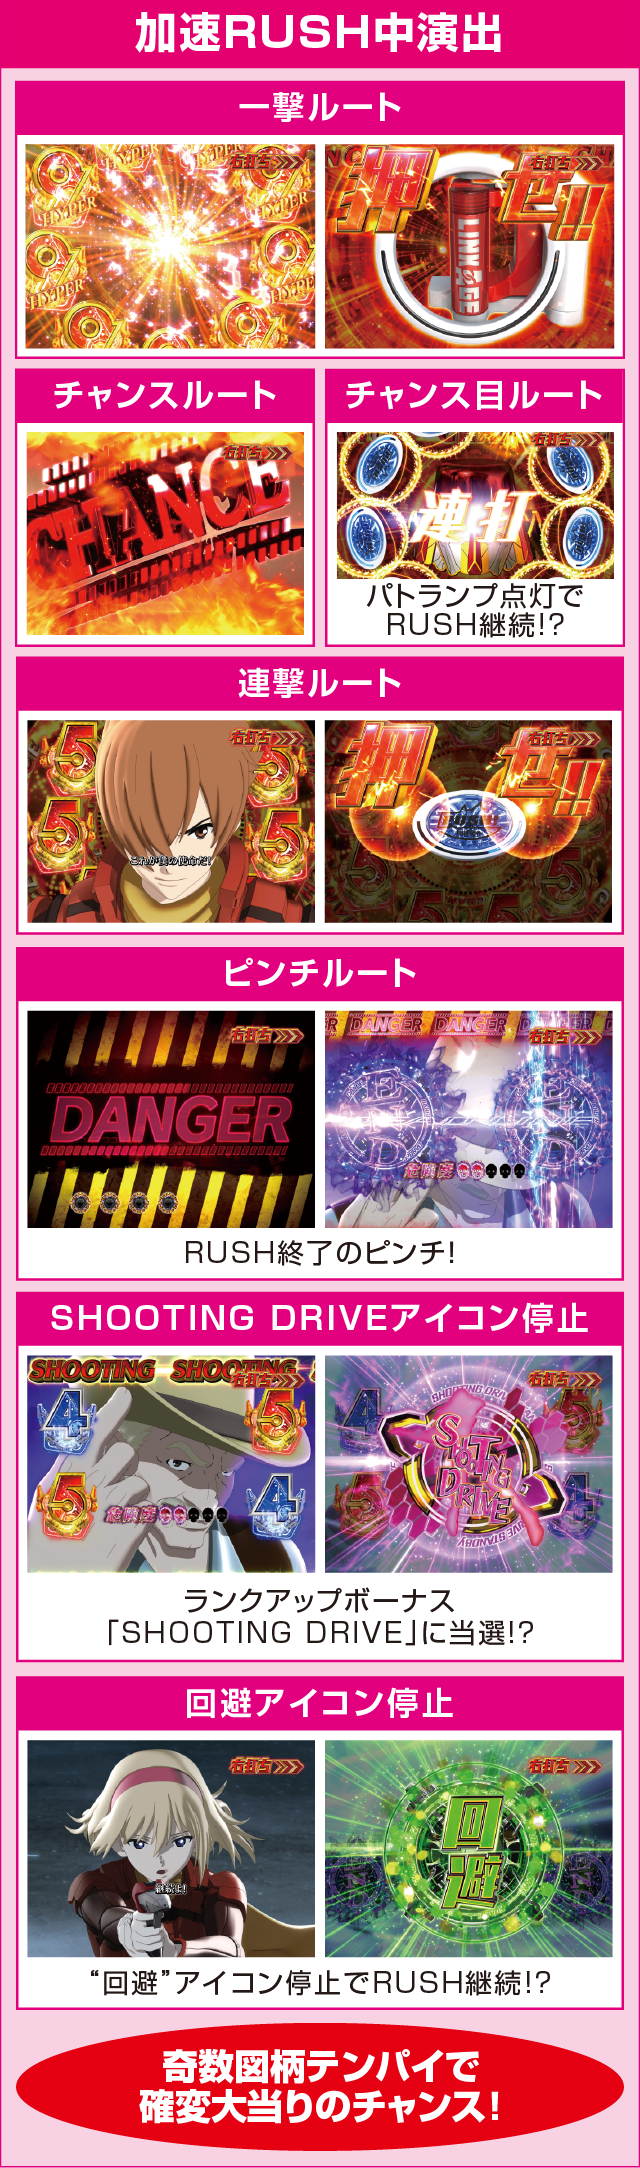 P CYBORG009 CALL OF JUSTICE HI-SPEED EDITIONのピックアップポイント